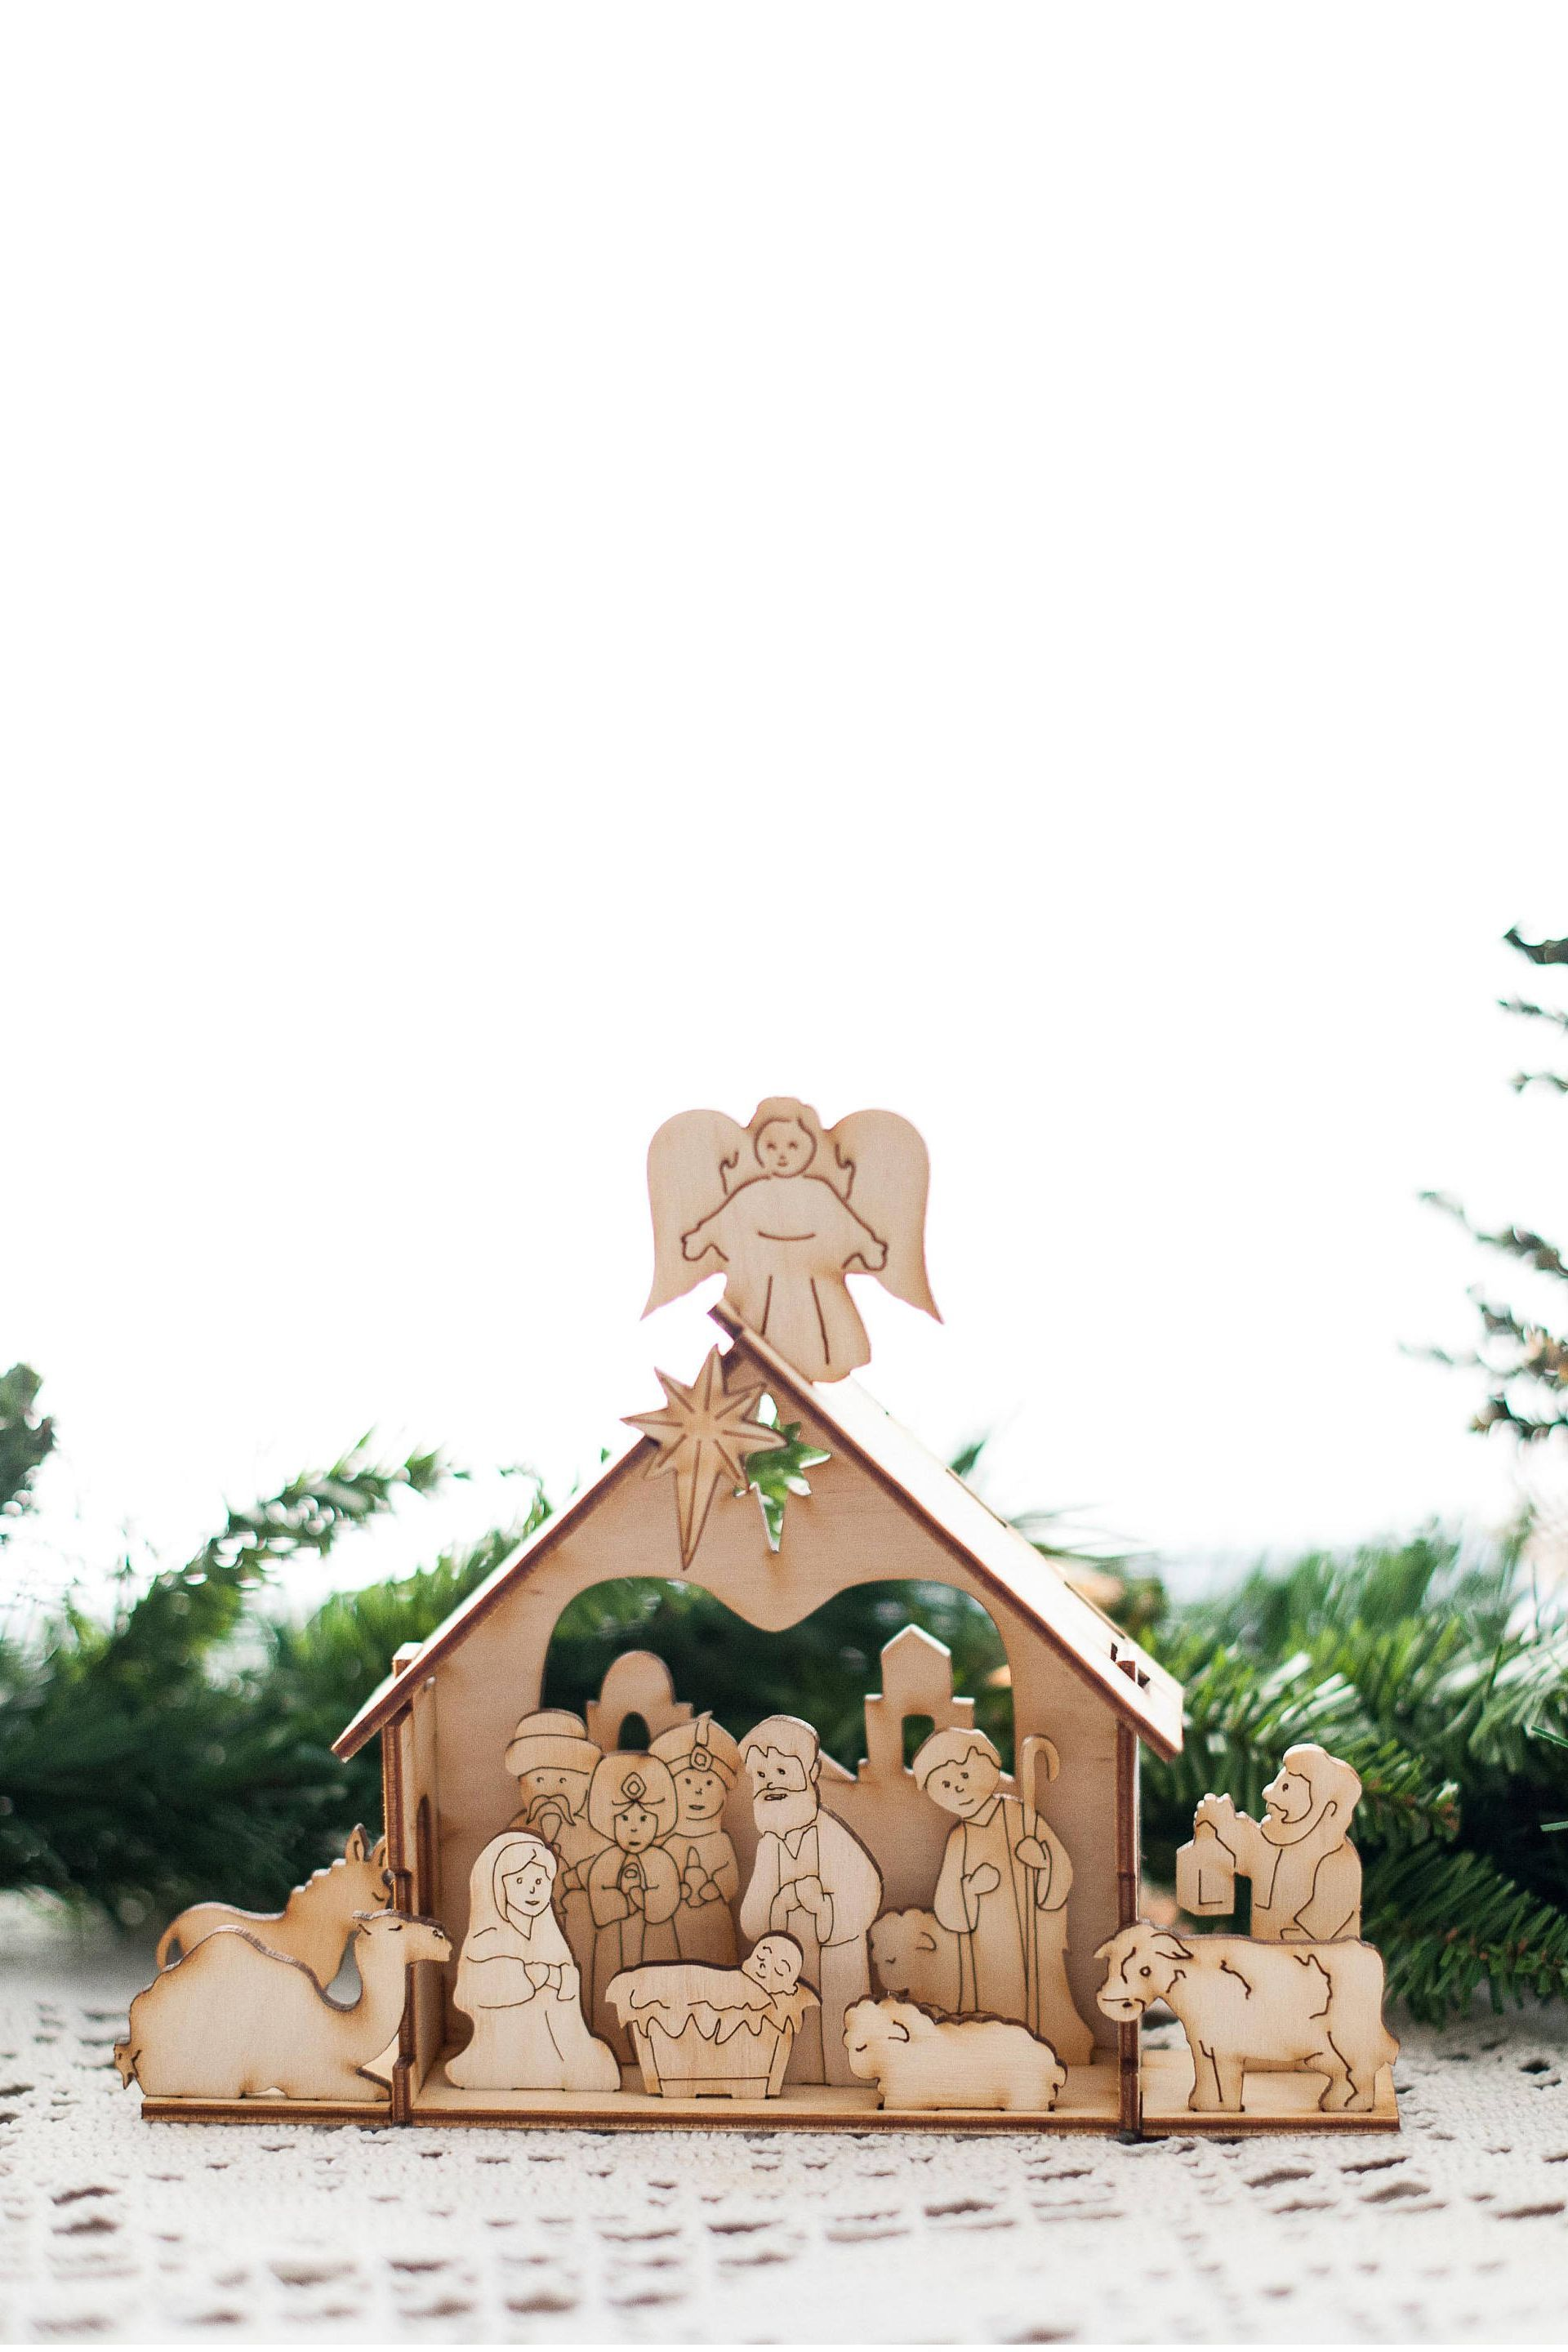 Build-Your-Own Nativity Set on christmas plans, train plans, halloween plans, temple plans, sheep plans, outdoor wooden manger plans, birth plans, church plans, life plans, marriage plans, sleigh plans,